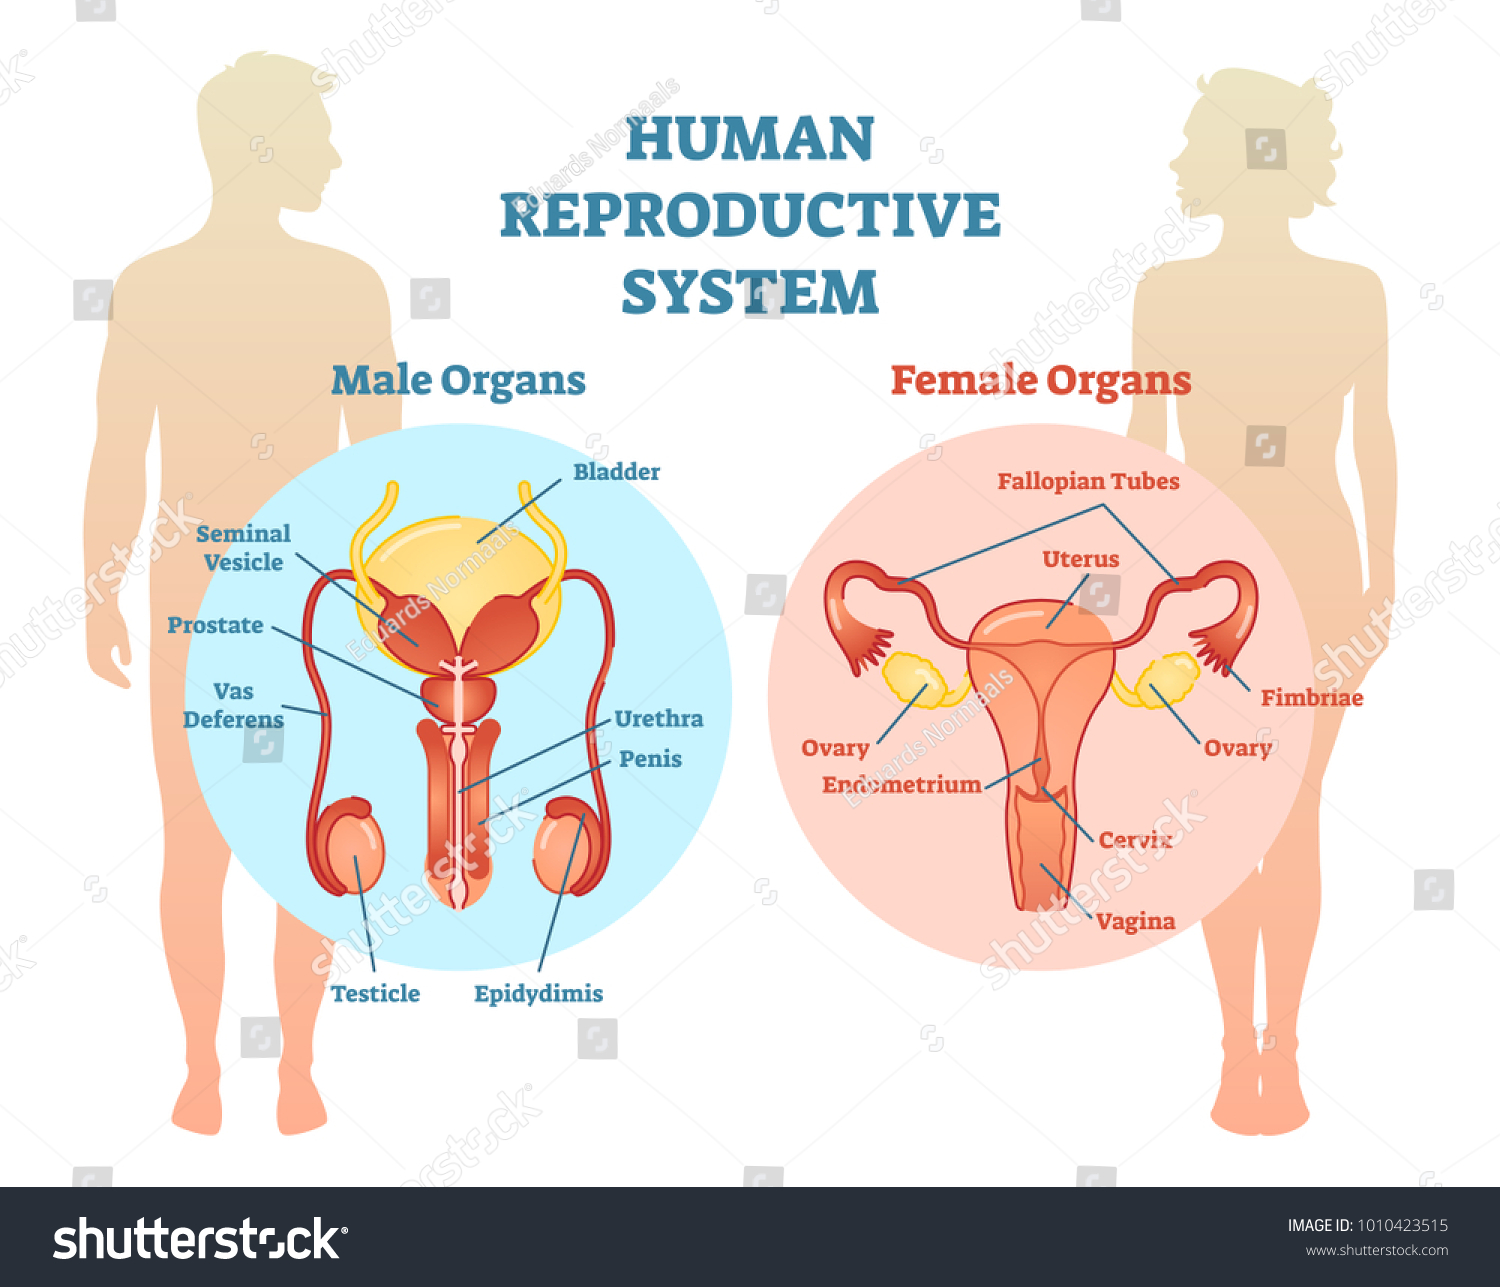 Human reproductive system vector illustration diagram stock vector human reproductive system vector illustration diagram male and female medicine educational information ccuart Choice Image